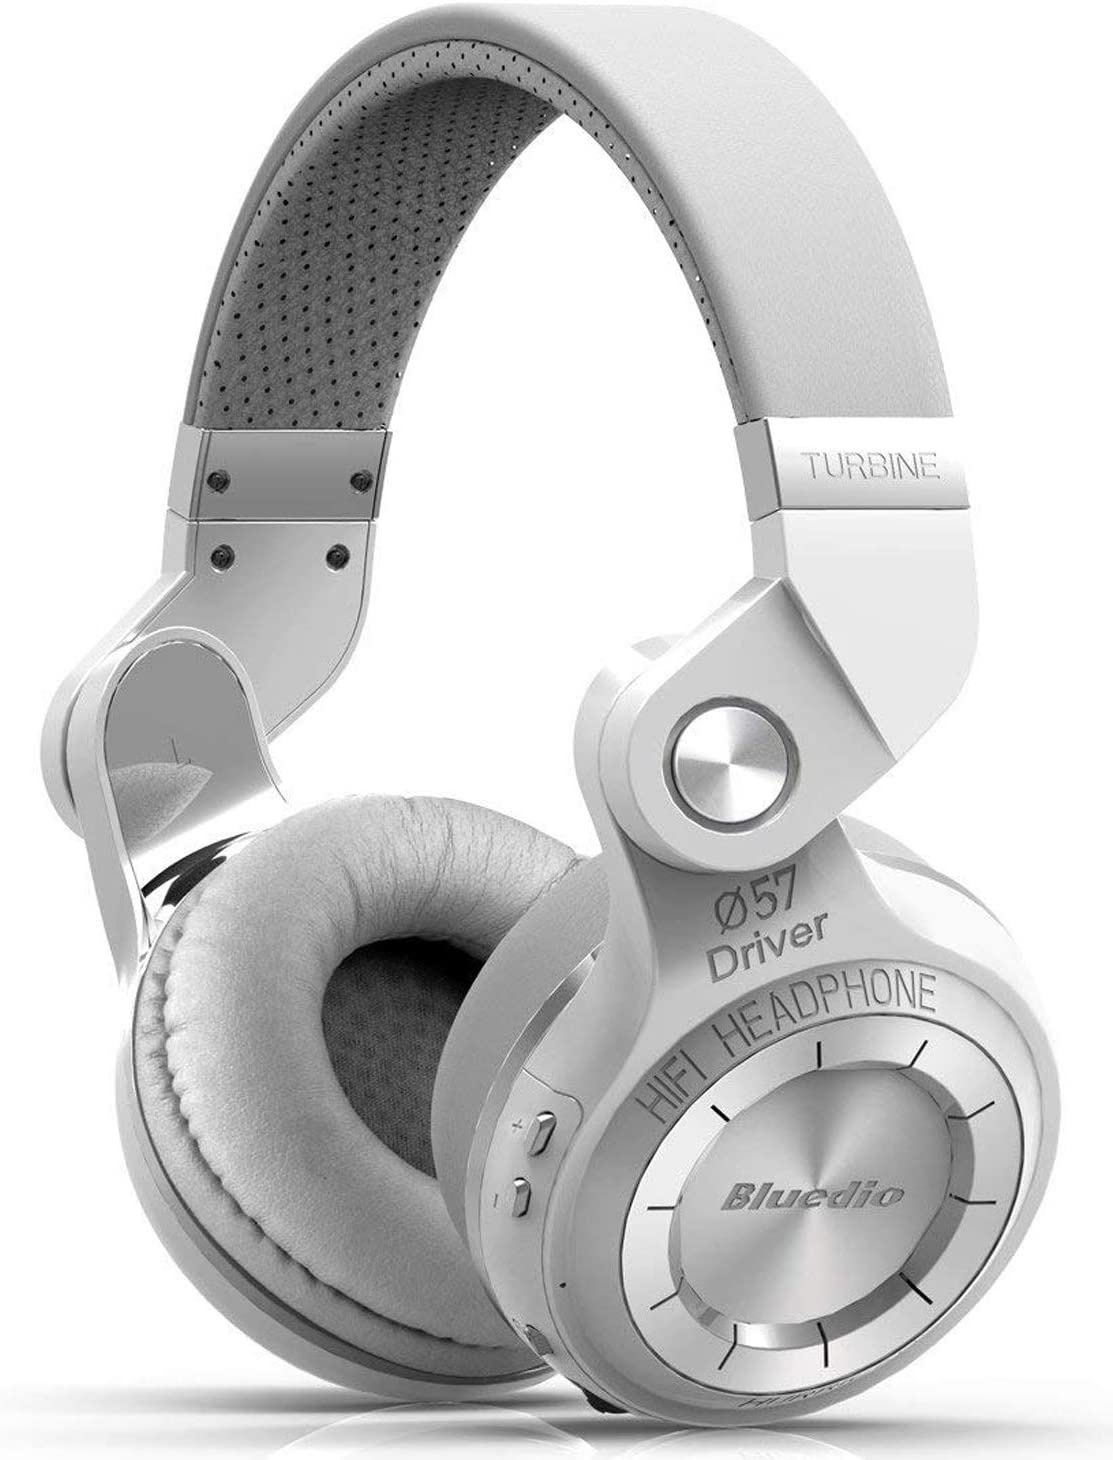 Bluedio T2s Bluetooth Headphones On Ear with Mic, 57mm Driver Rotary Folding Wireless Headset, Wired and Wireless Headphones for Cell Phone/TV/PC, 40 Hours Play Time (White)